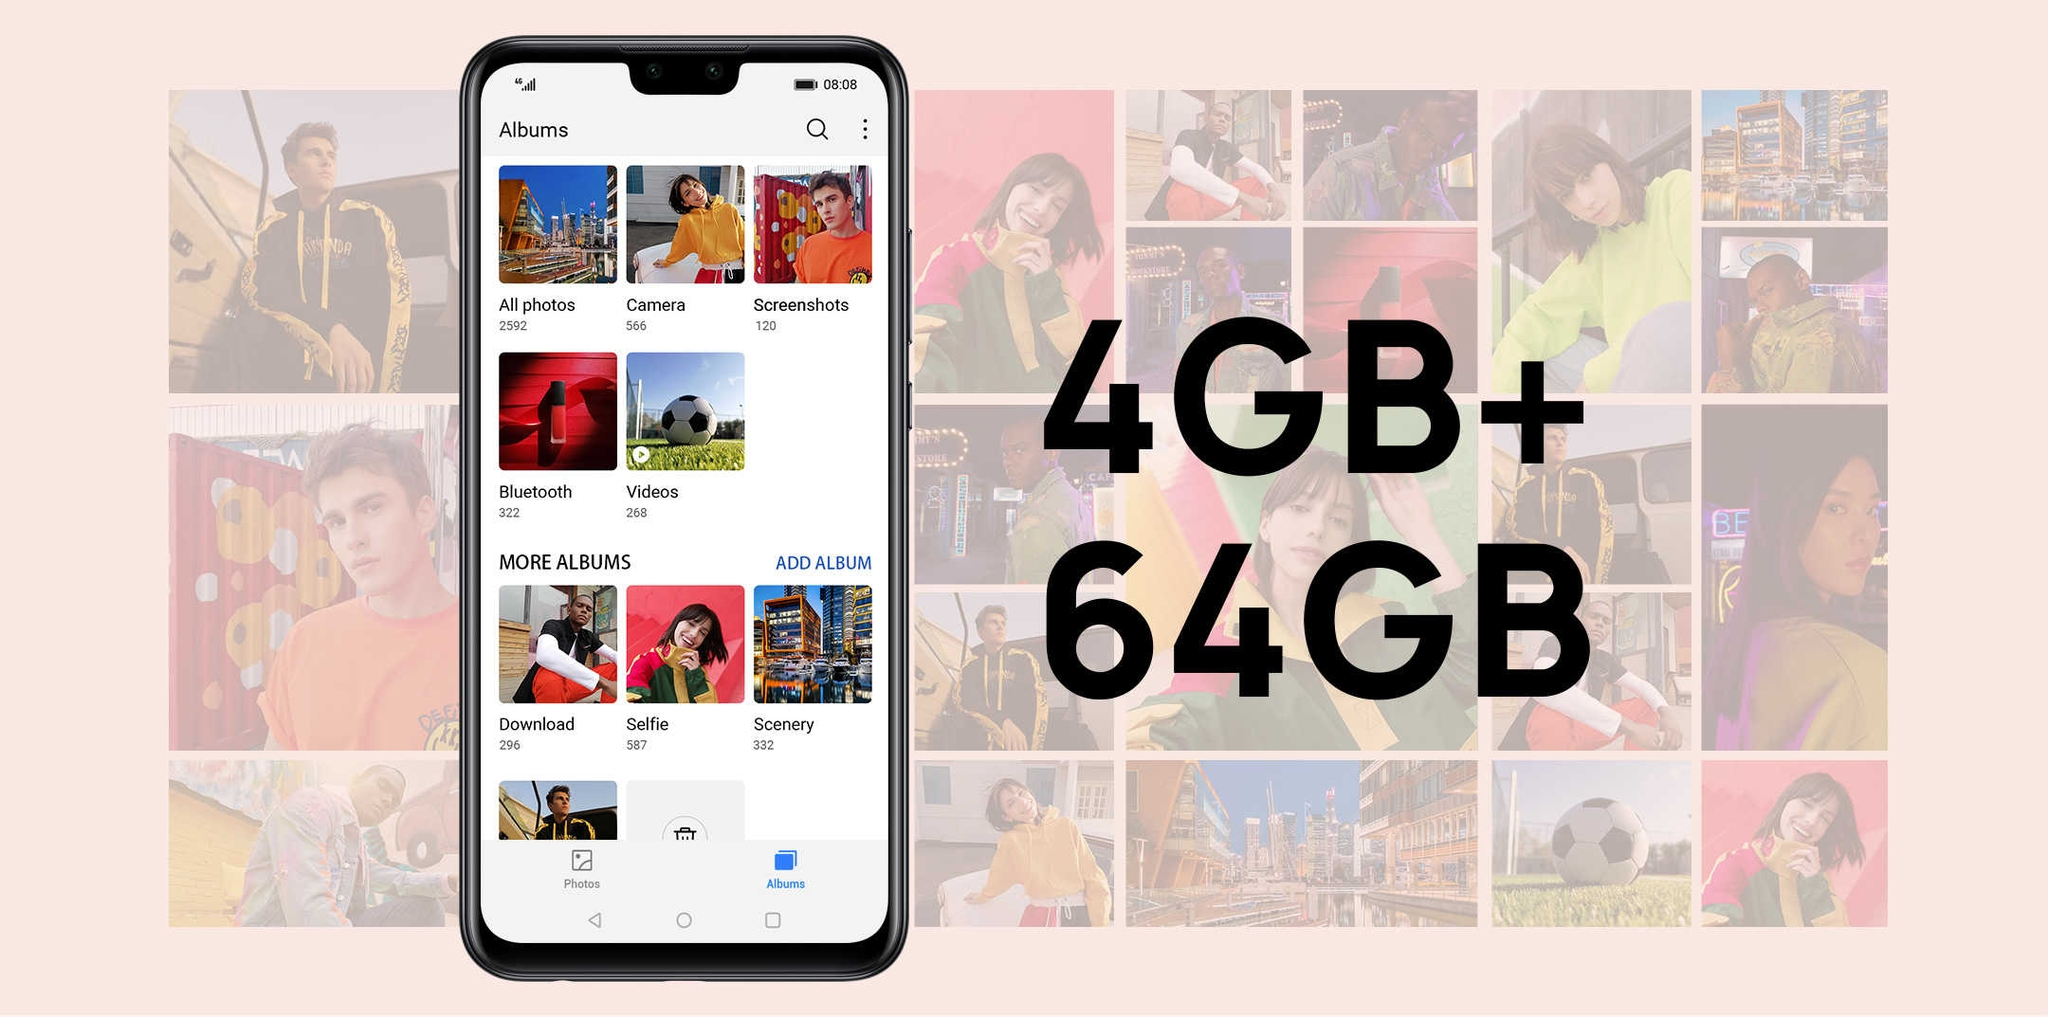 HUAWEI Y8s 64GB large storage